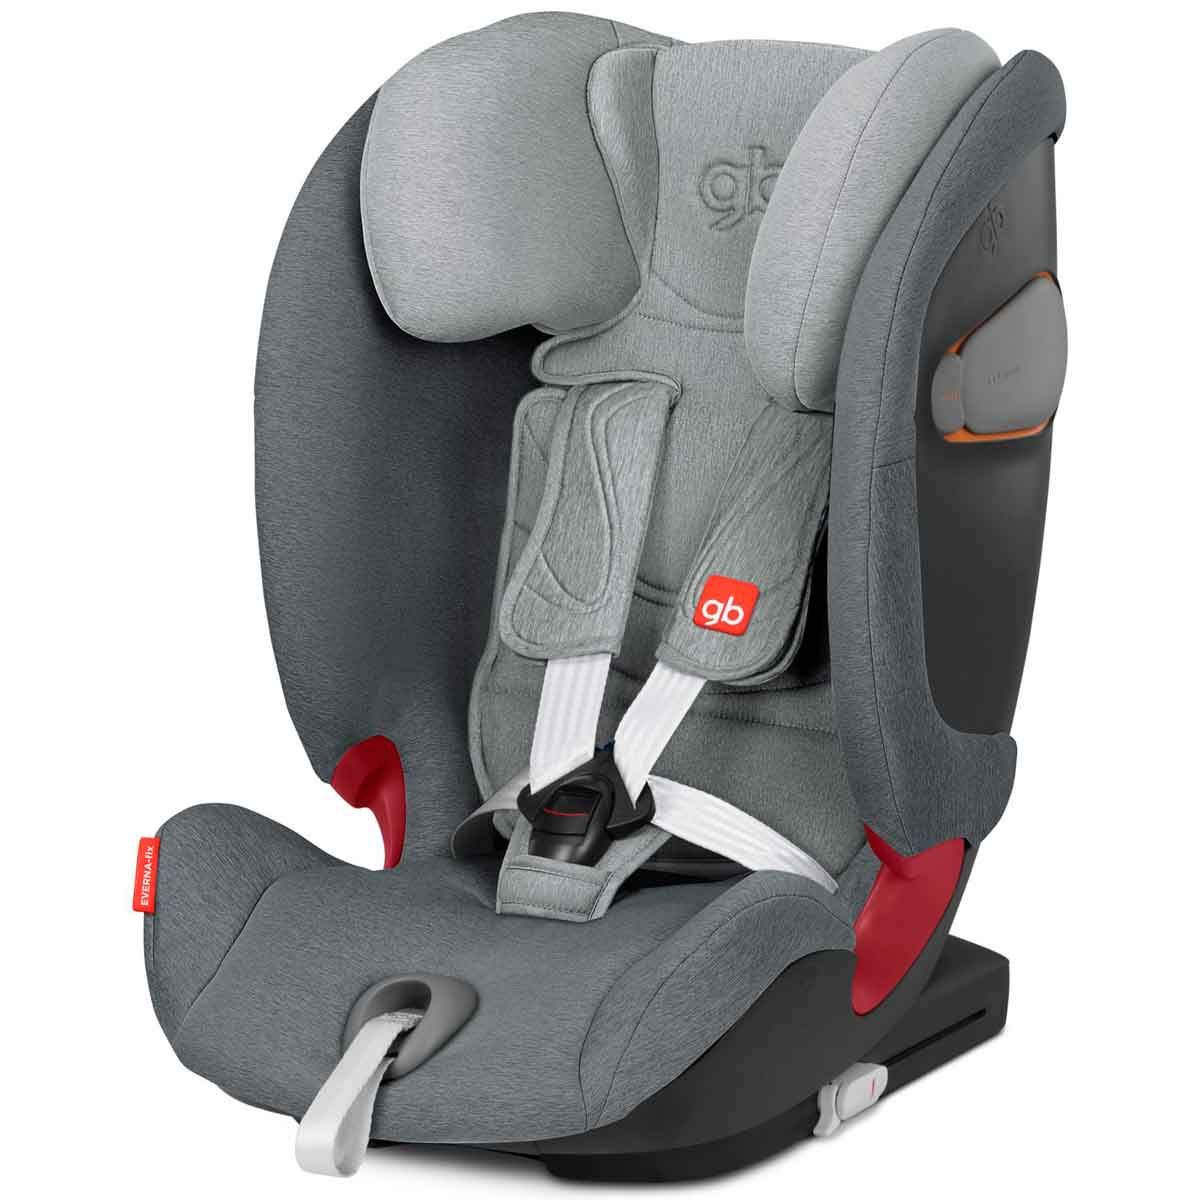 Silla de coche GB Everna fix London Grey